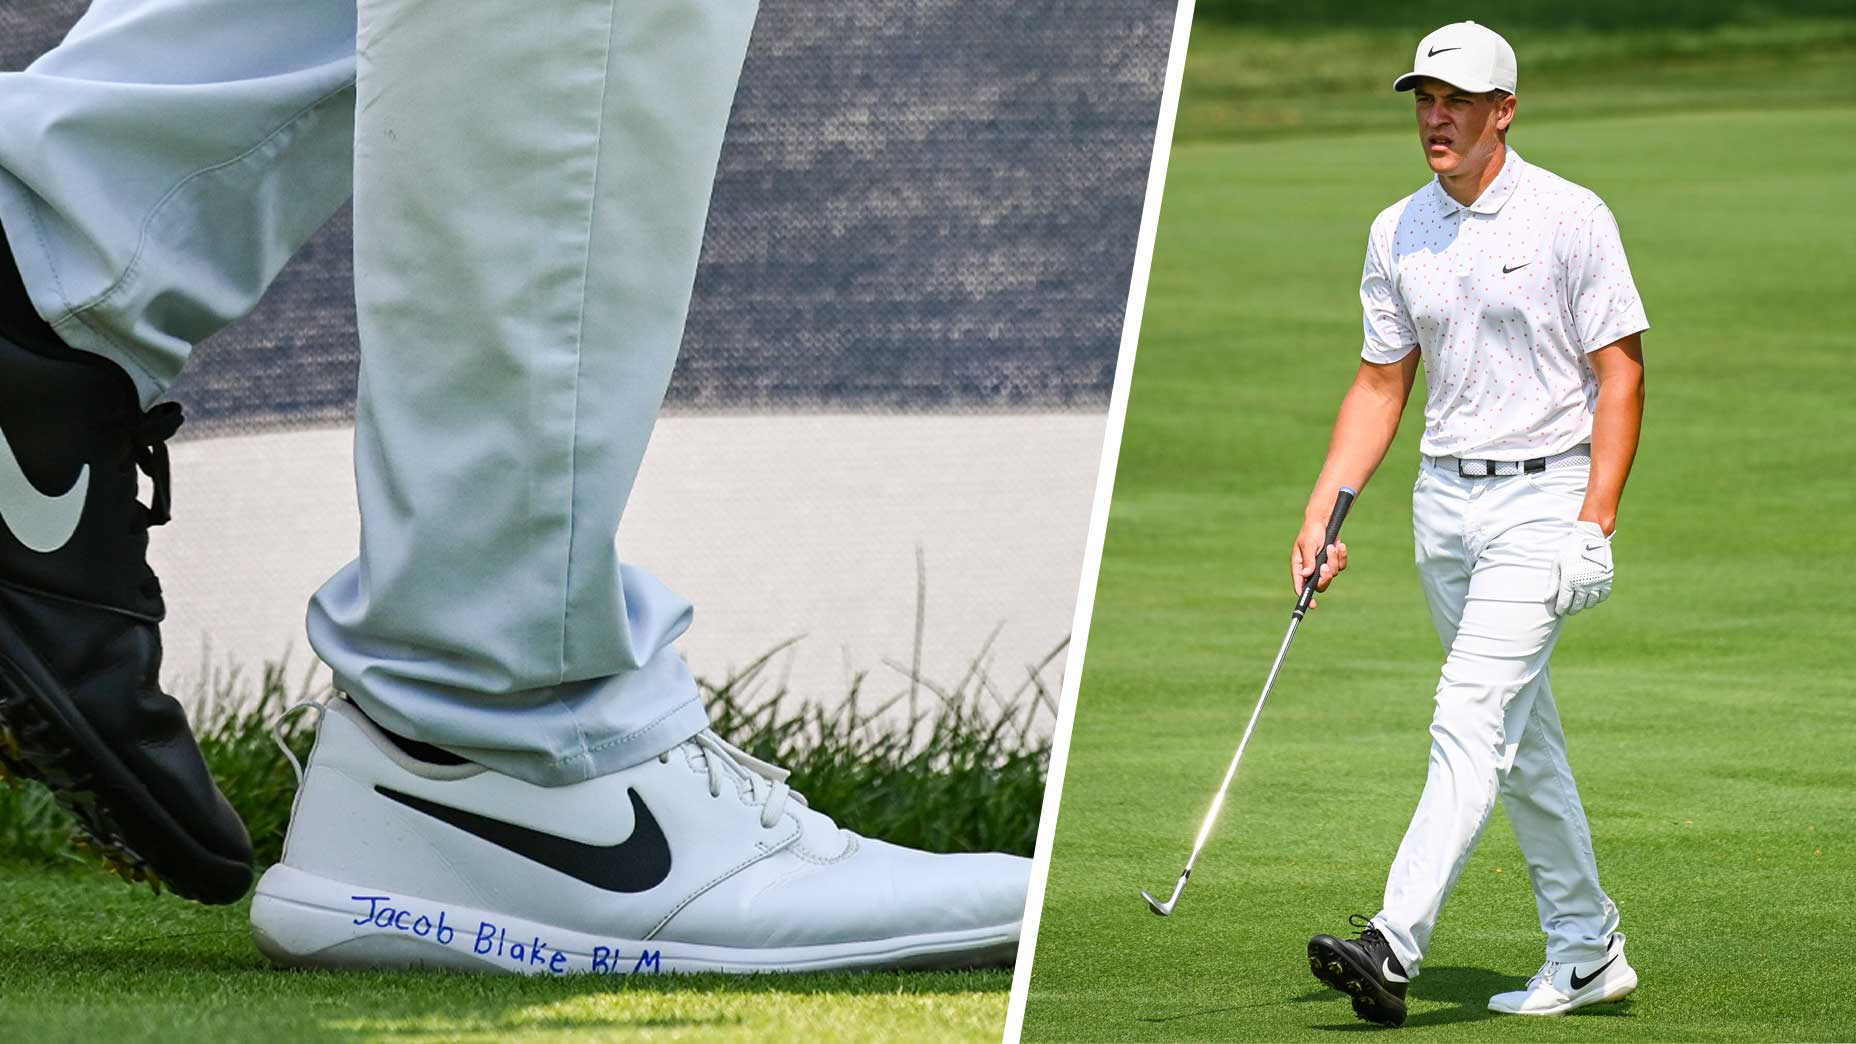 Cameron Champ explains 'Jacob Blake BLM' inscription on golf shoes